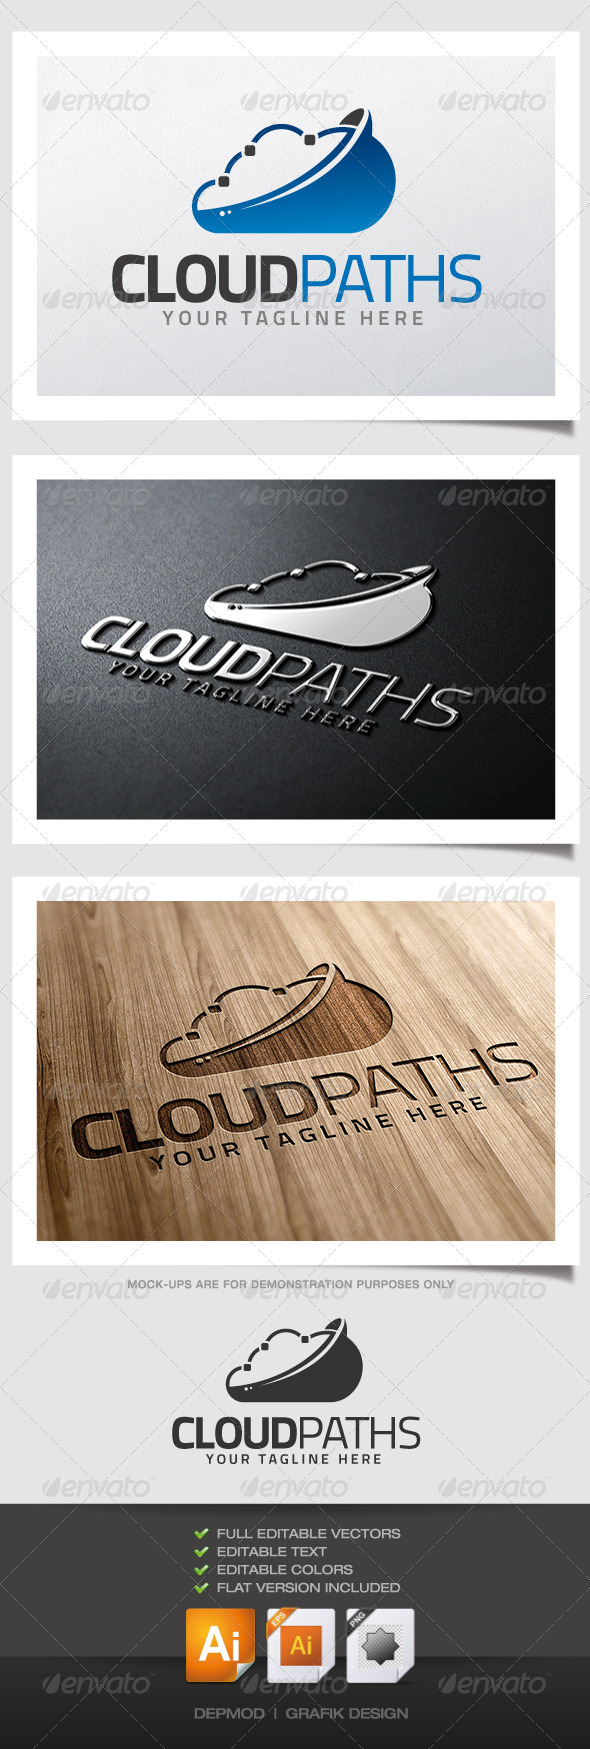 Cloud Paths logo